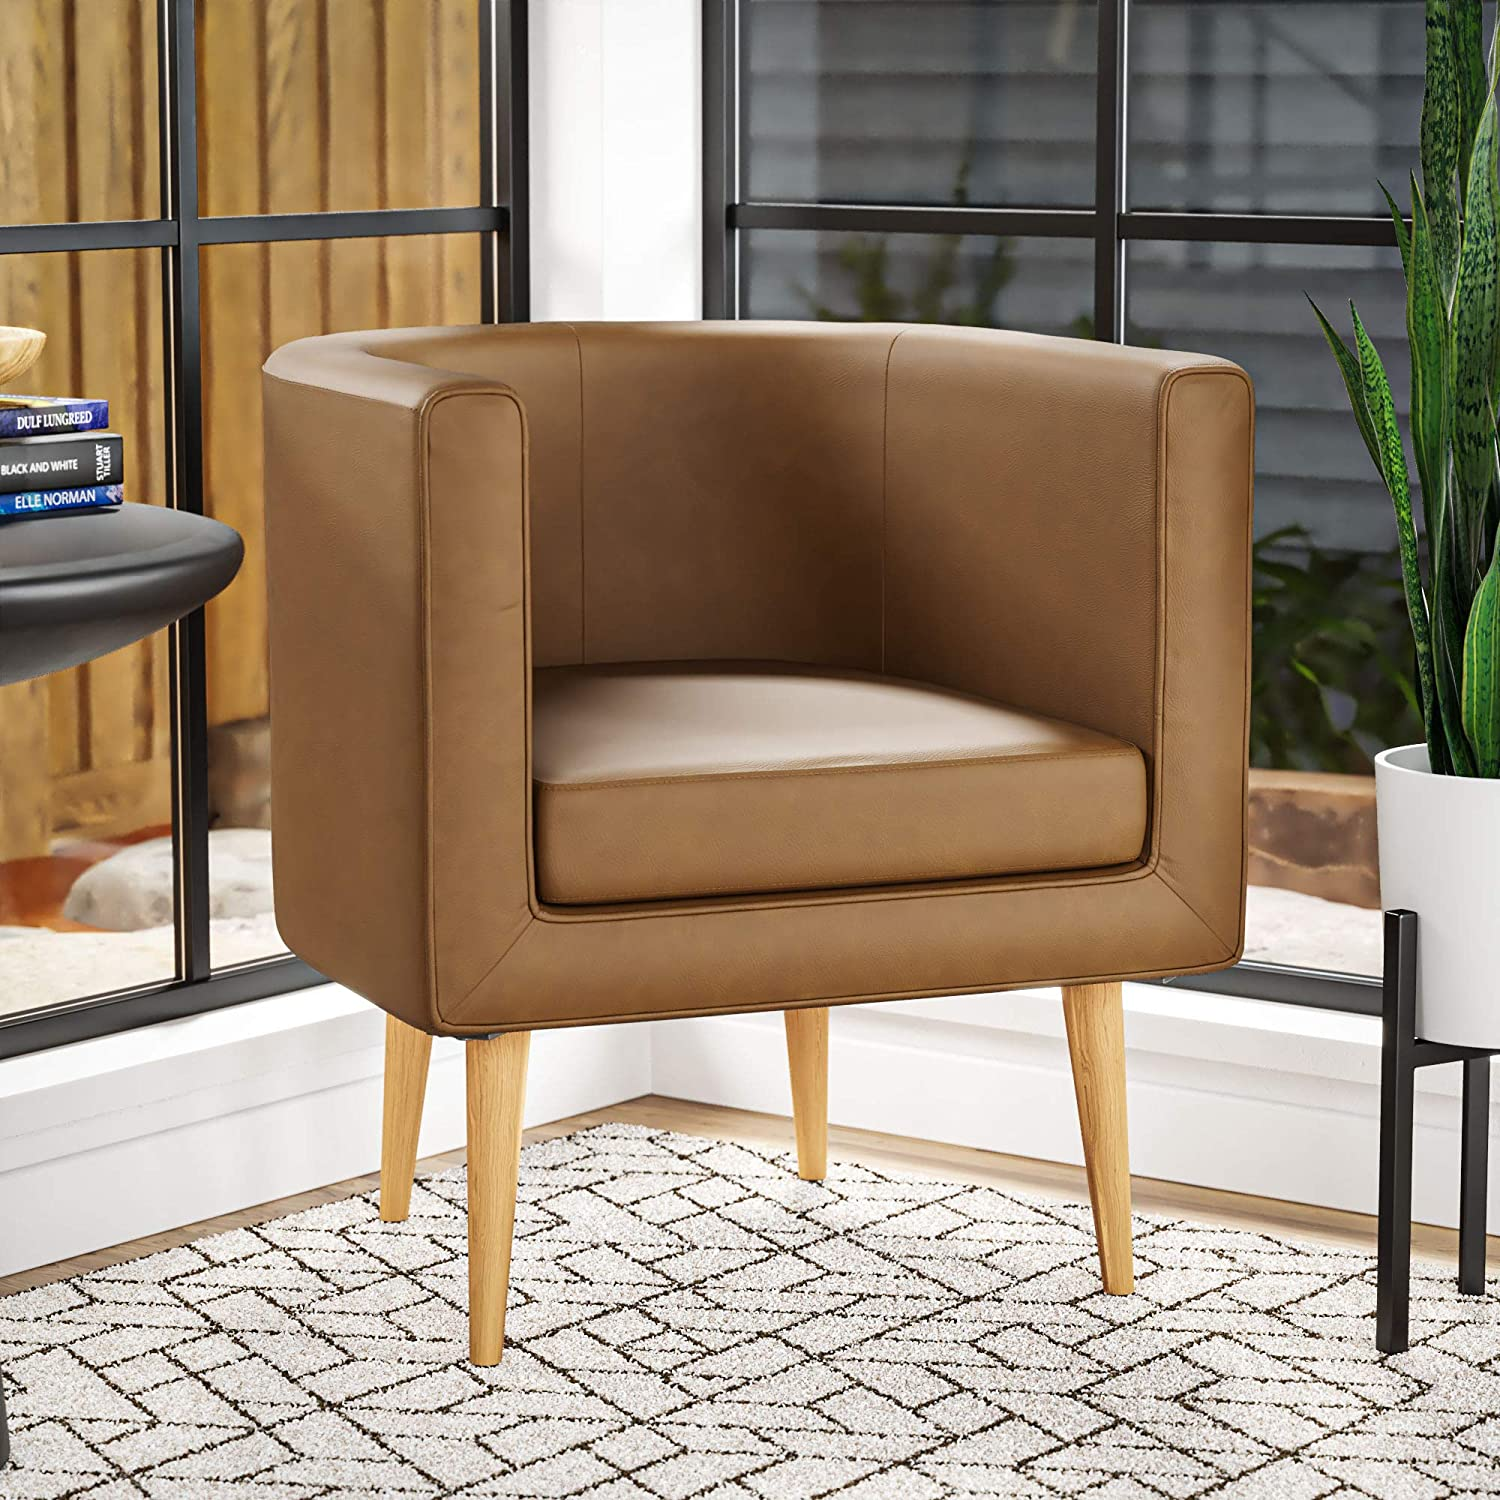 Edenbrook Combe Barrel Chair with Tapered Wood Legs – Upholstered Tub chair for Living Room, Camel Faux Leather